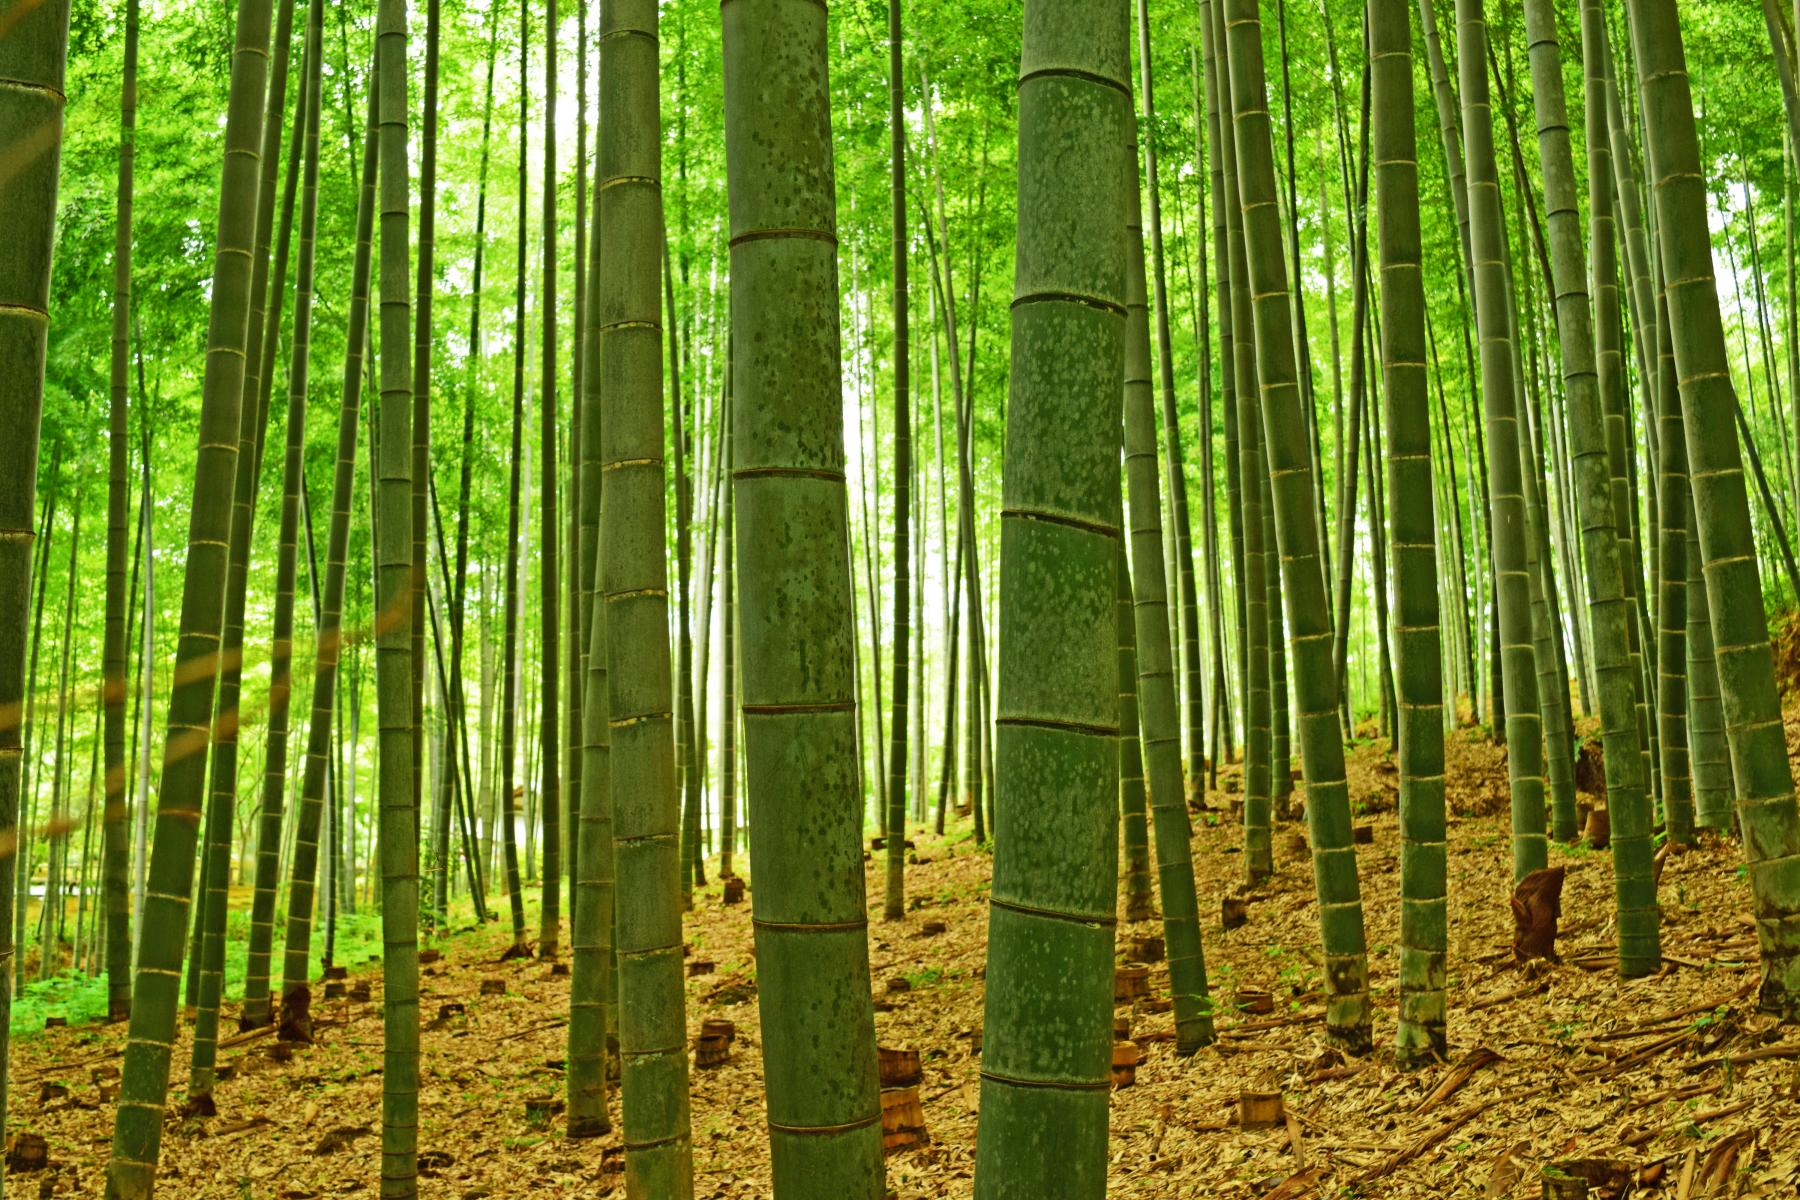 Let's walk the ancient pilgrimage trail of Japan - Kumano Kodo - Rerun starting at Kyoto, Japan